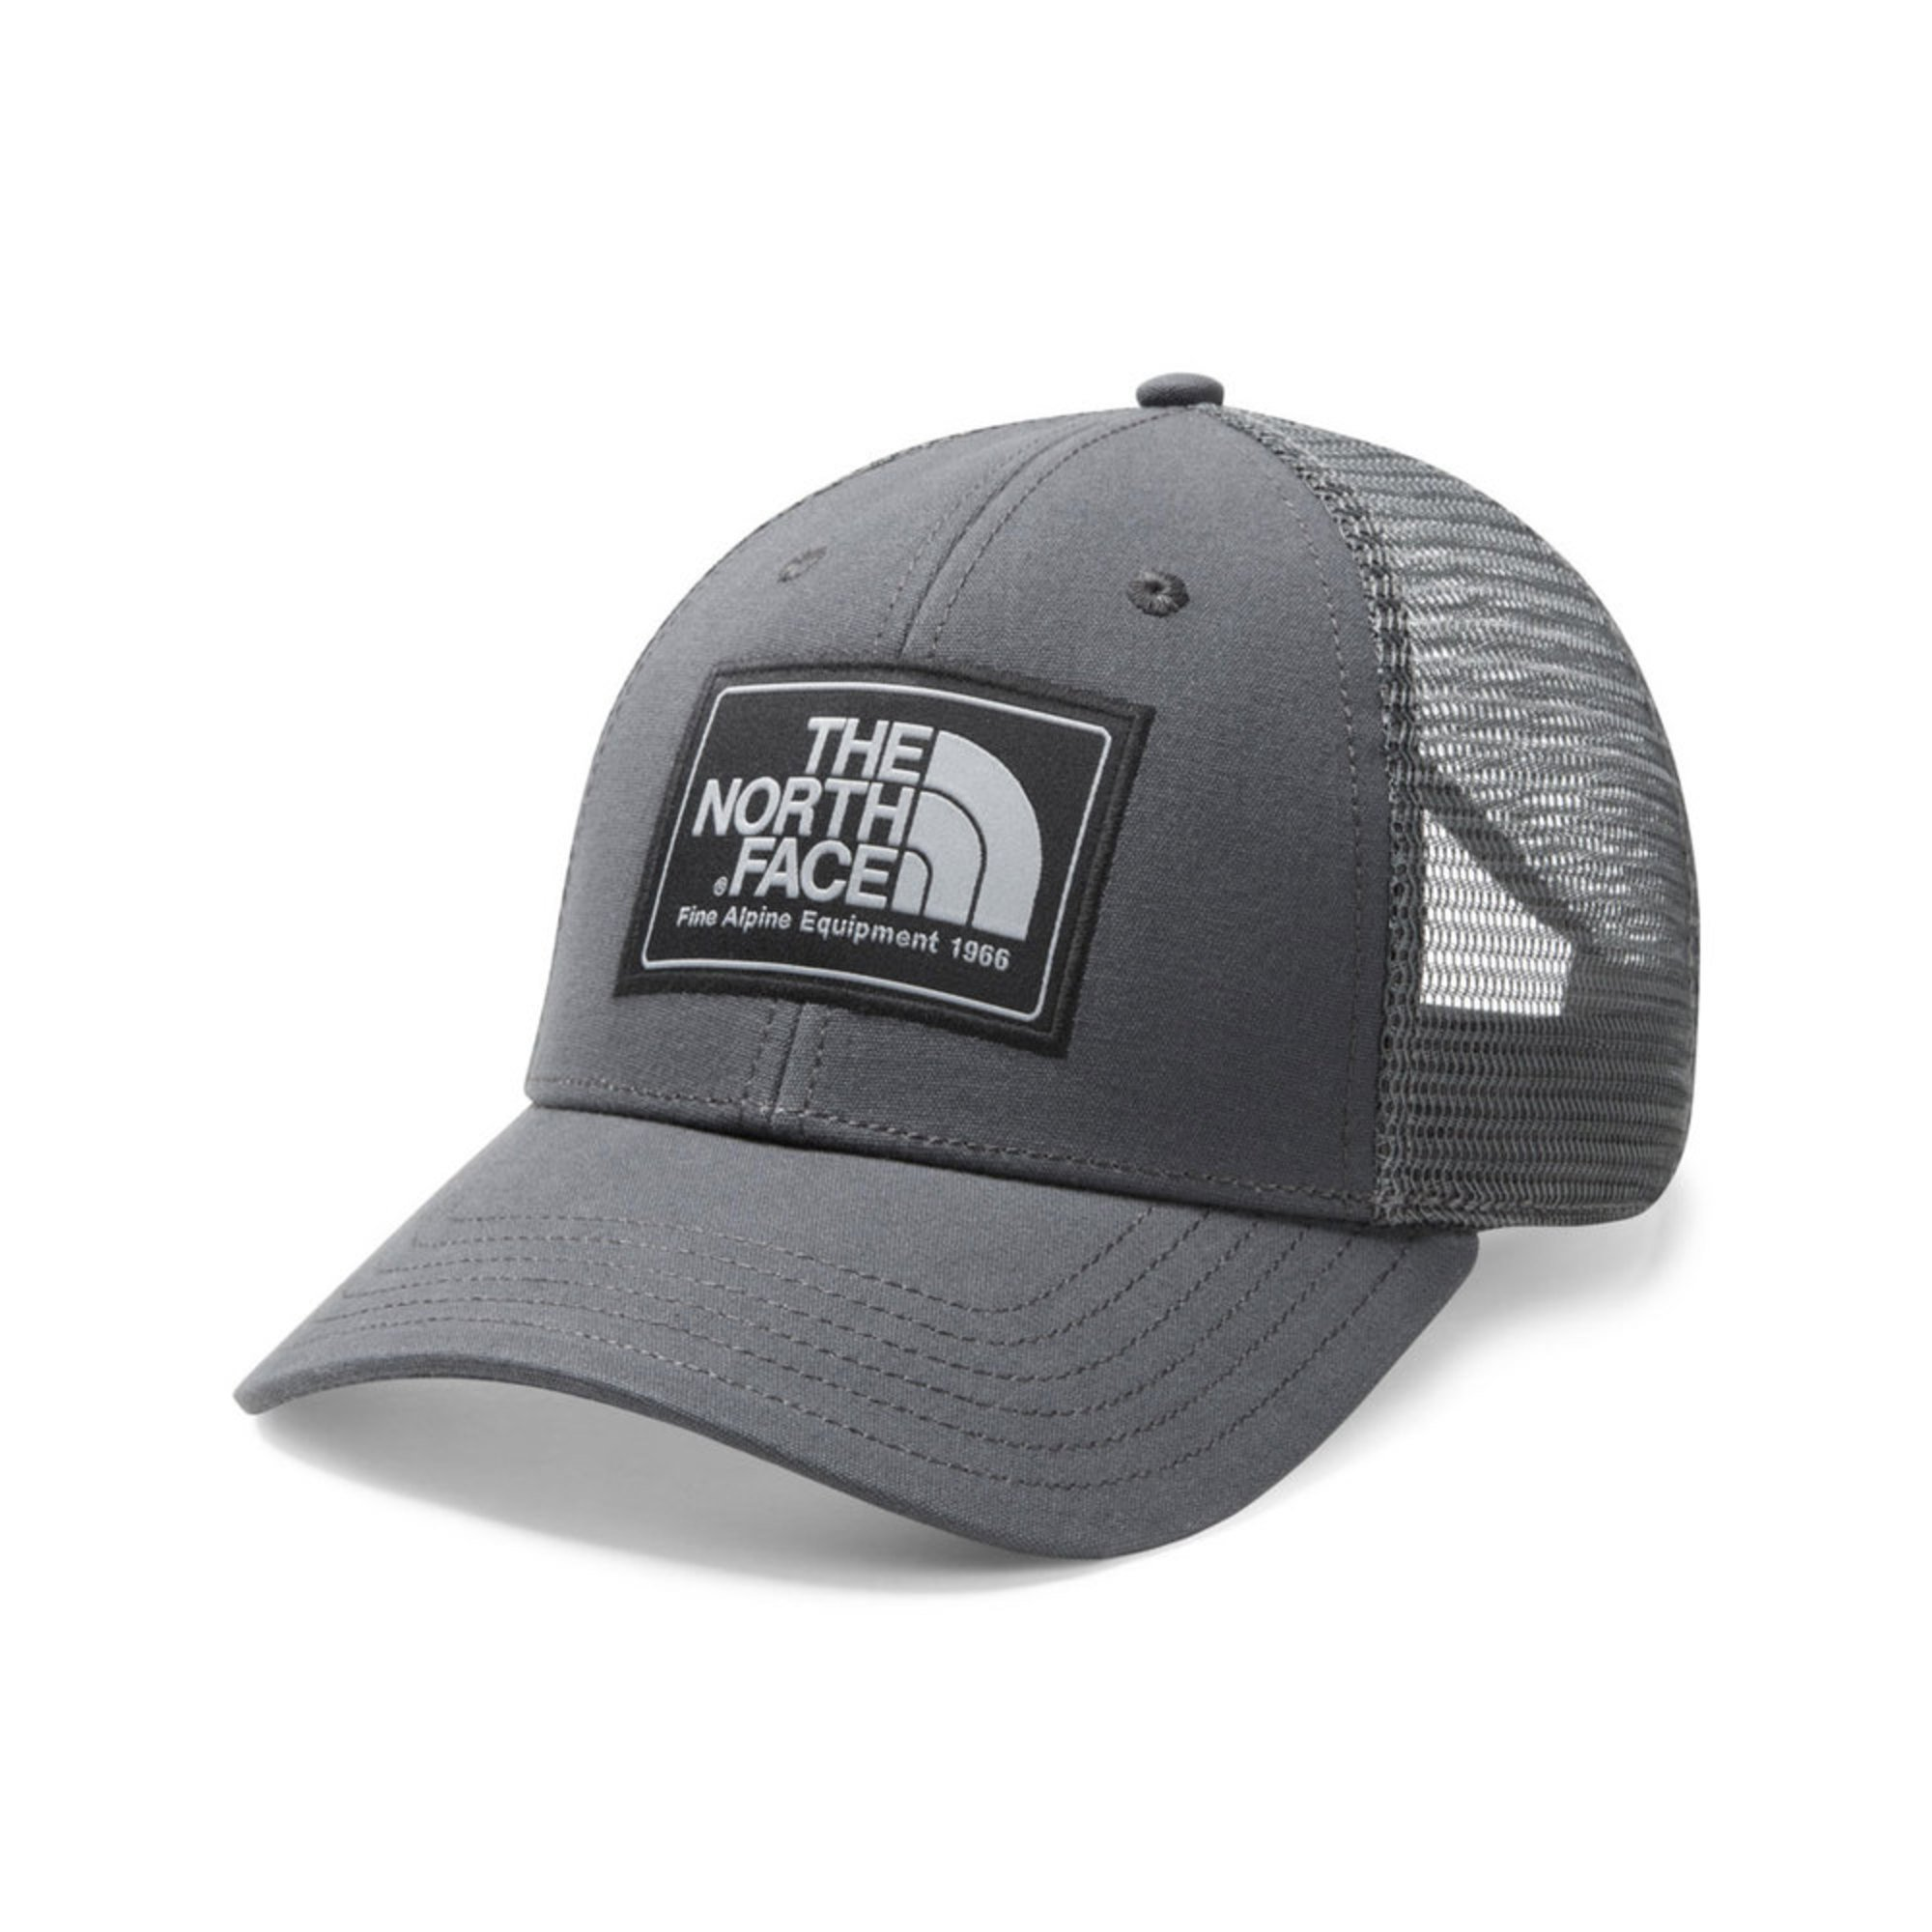 6ea489189f8 The North Face. The North Face Men s Mudder Trucker Hat